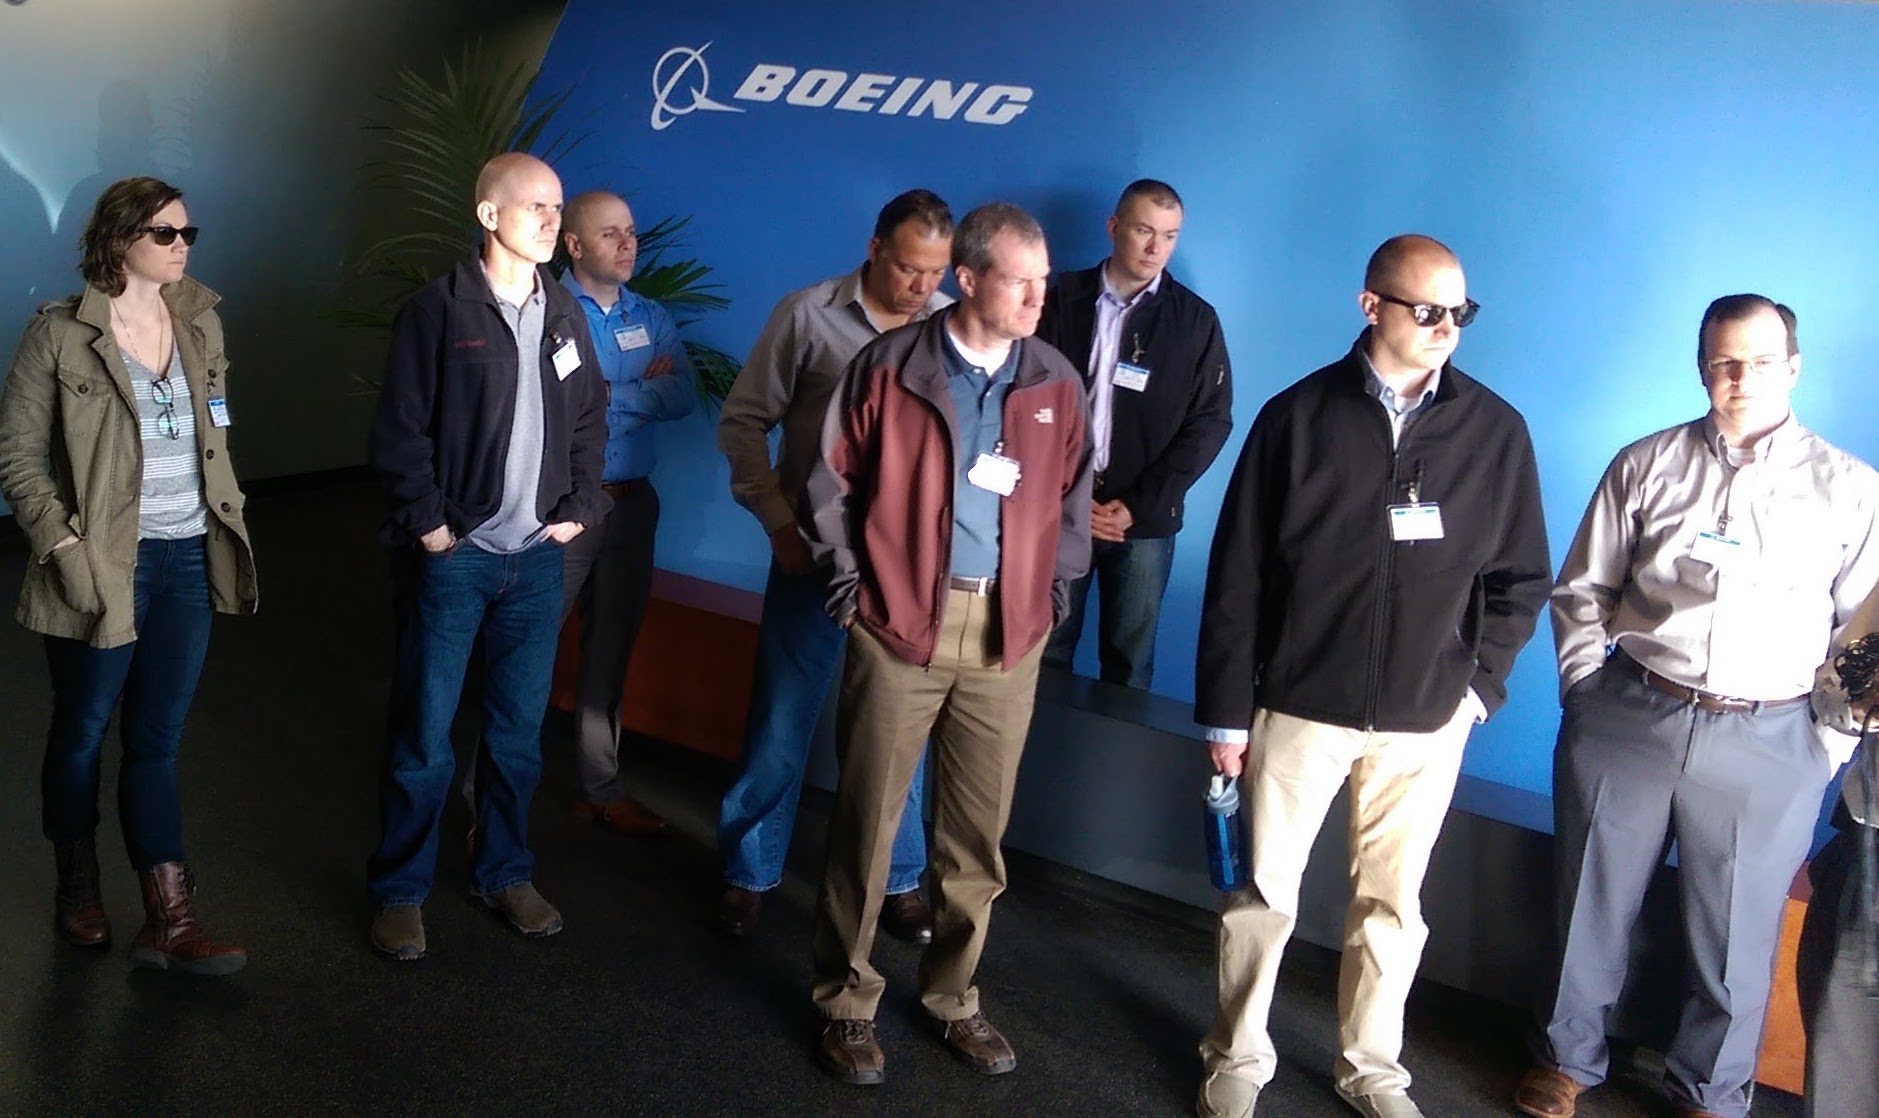 JBLM Fellows at Boeing